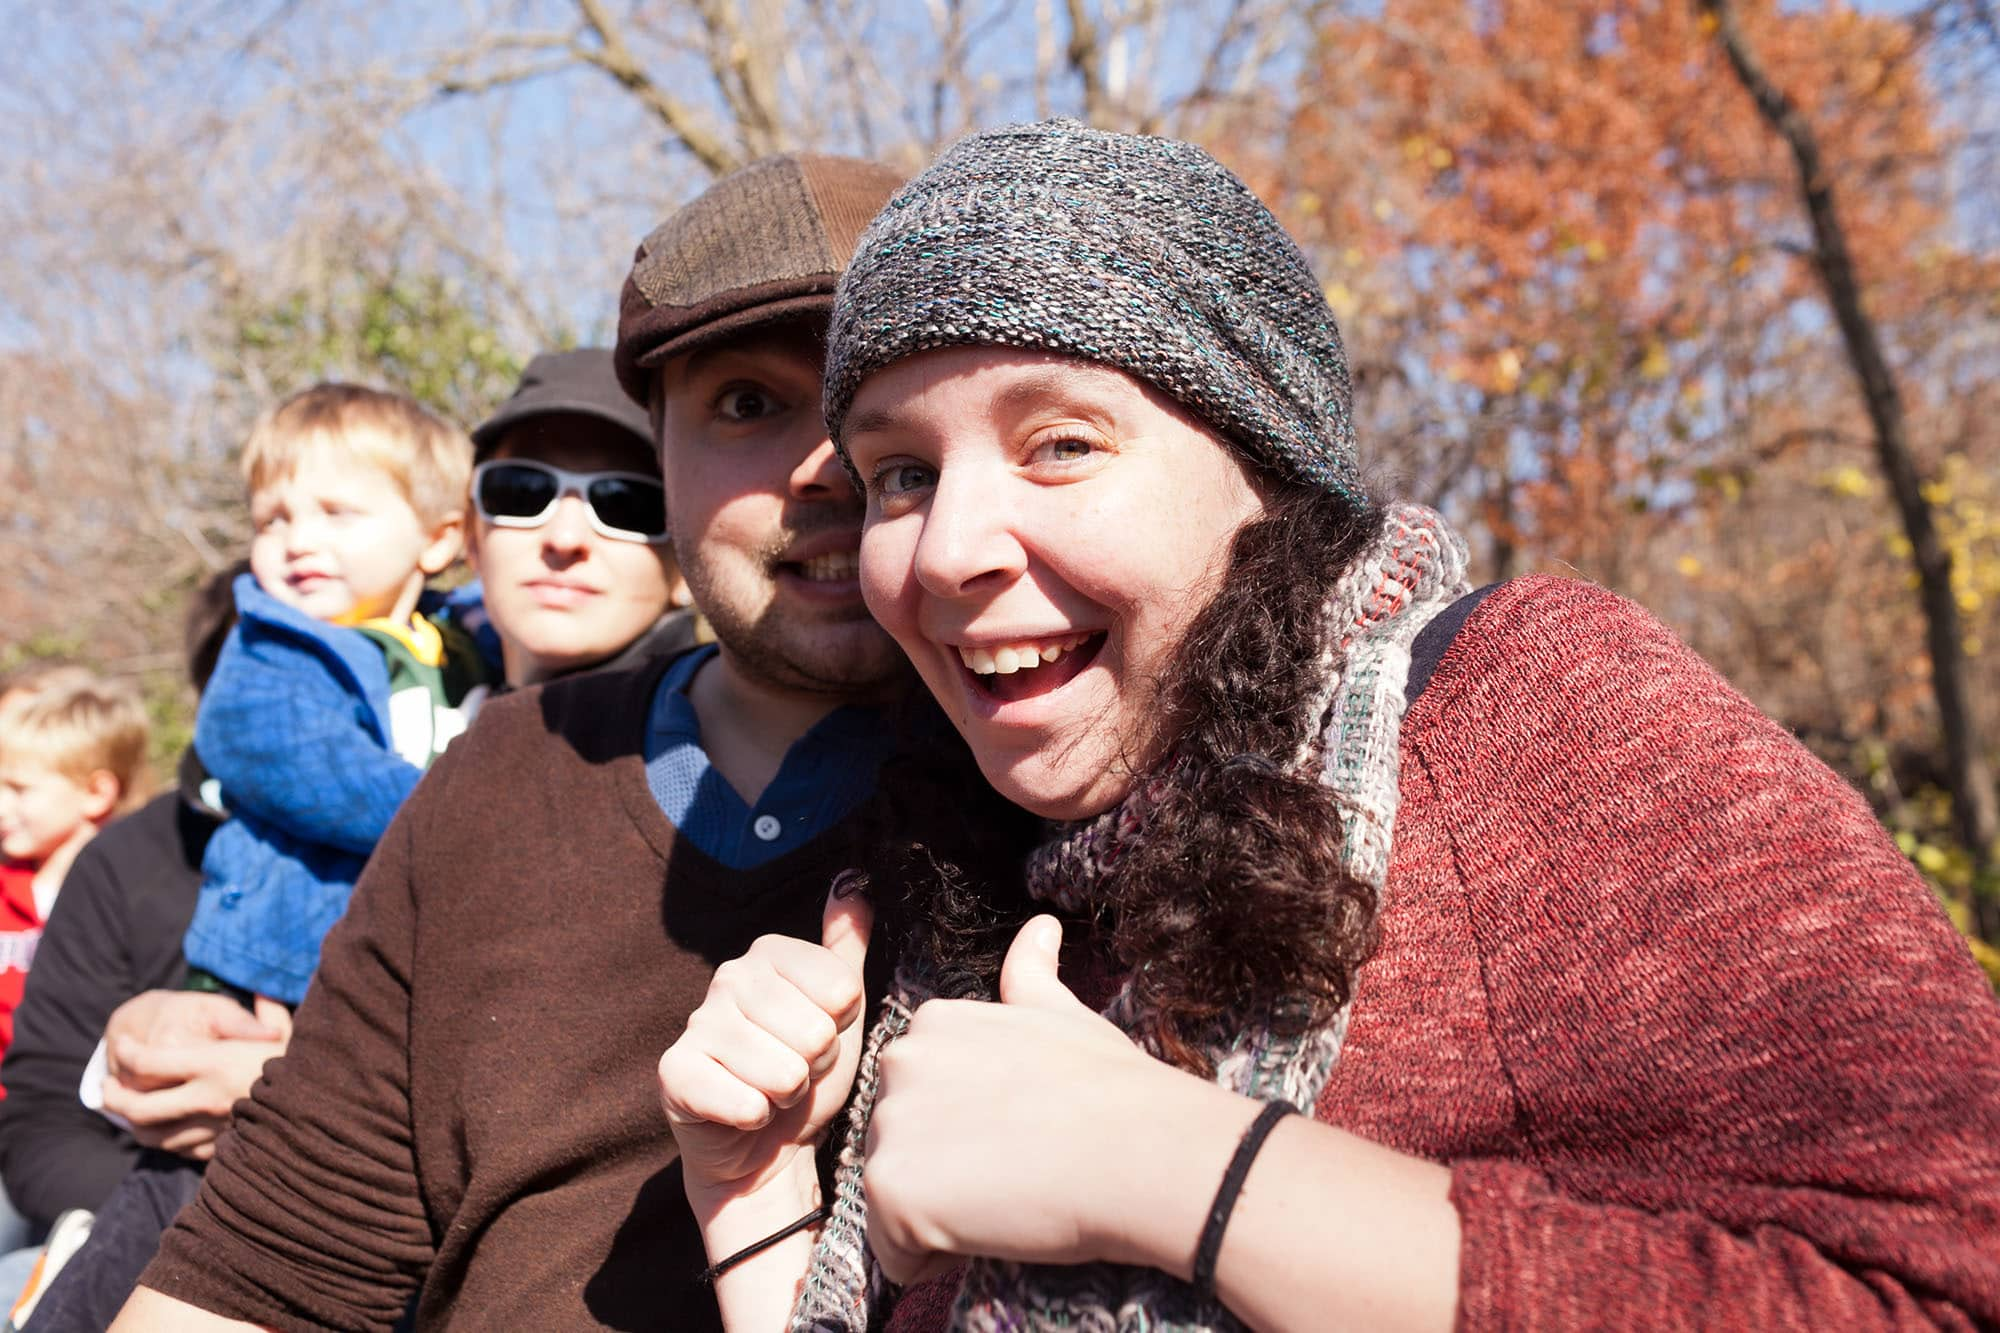 Heather and Jeremy at Bear Den Zoo Pumpkin Farm in Wisconsin